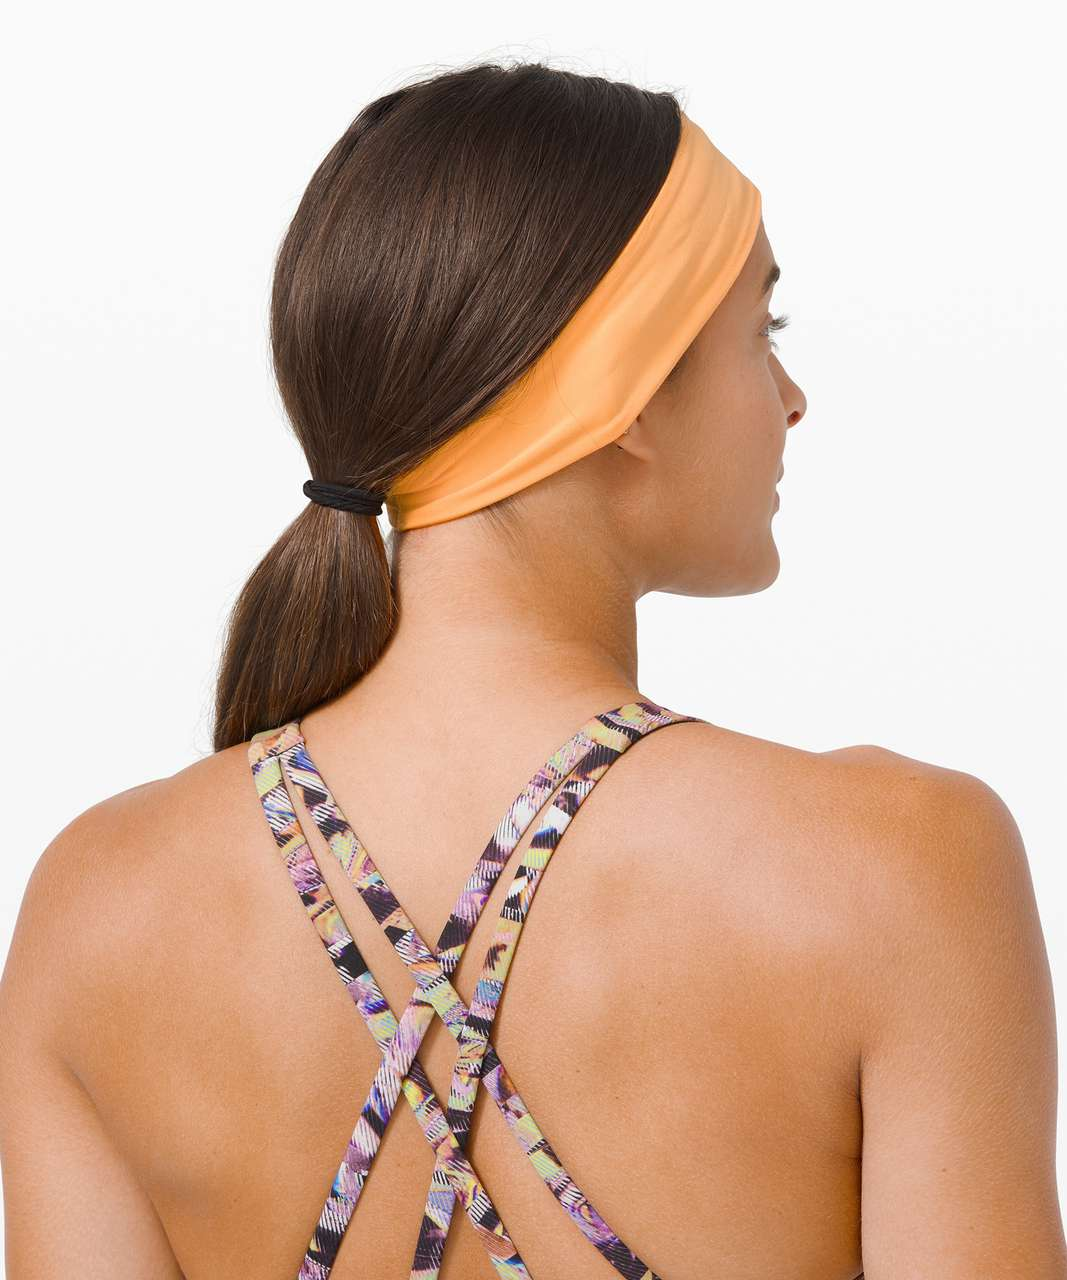 Lululemon Fly Away Tamer Headband II *SeaWheeze - Florid Orange